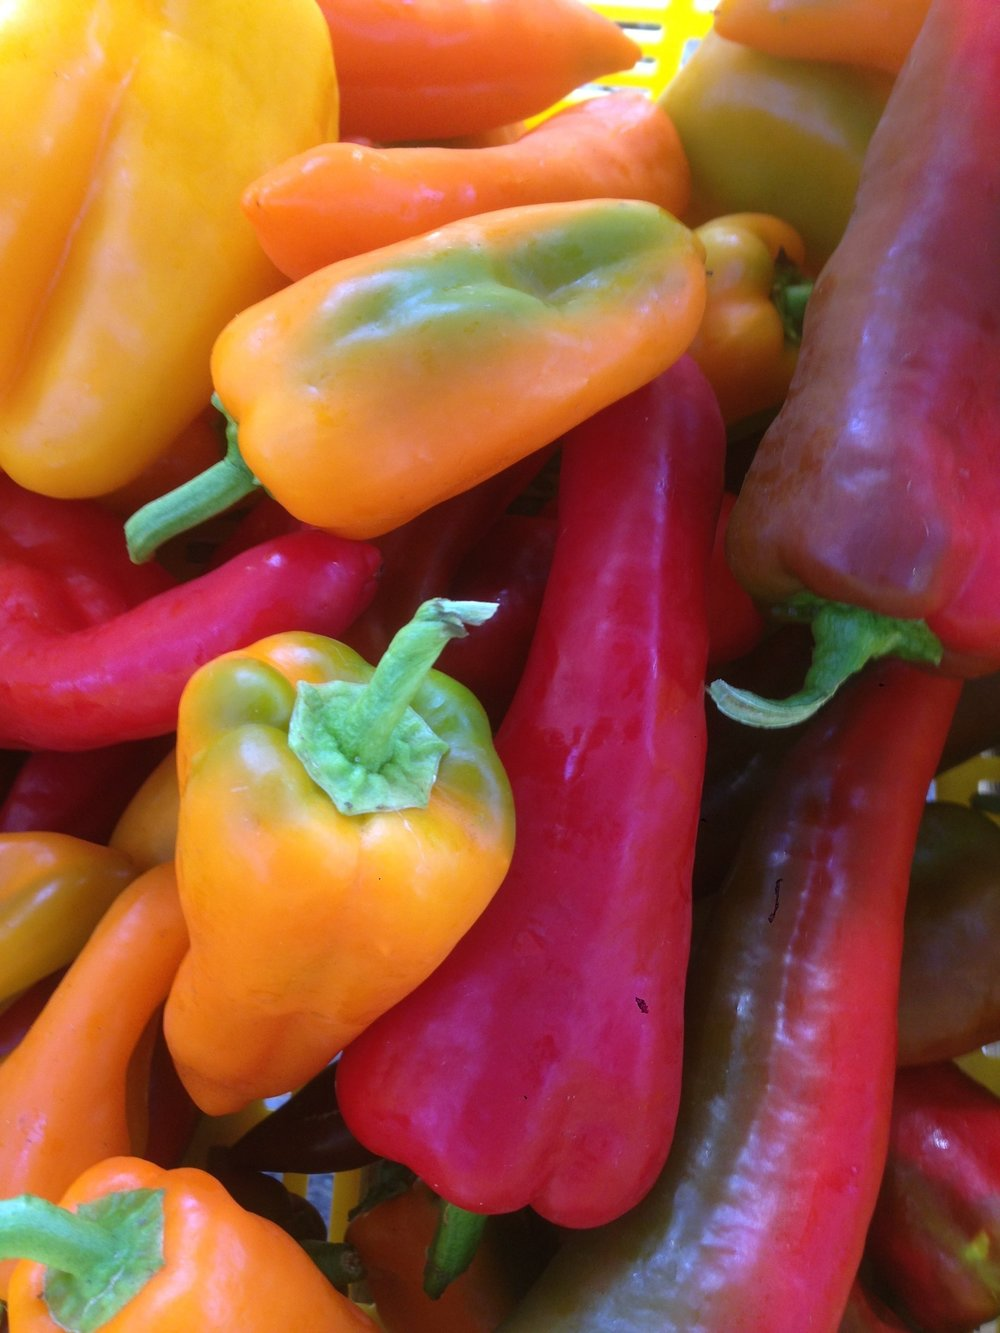 A few of our pepper varieties: Carmen (red), oranos (orange), and flavorburst (yellow) peppers.